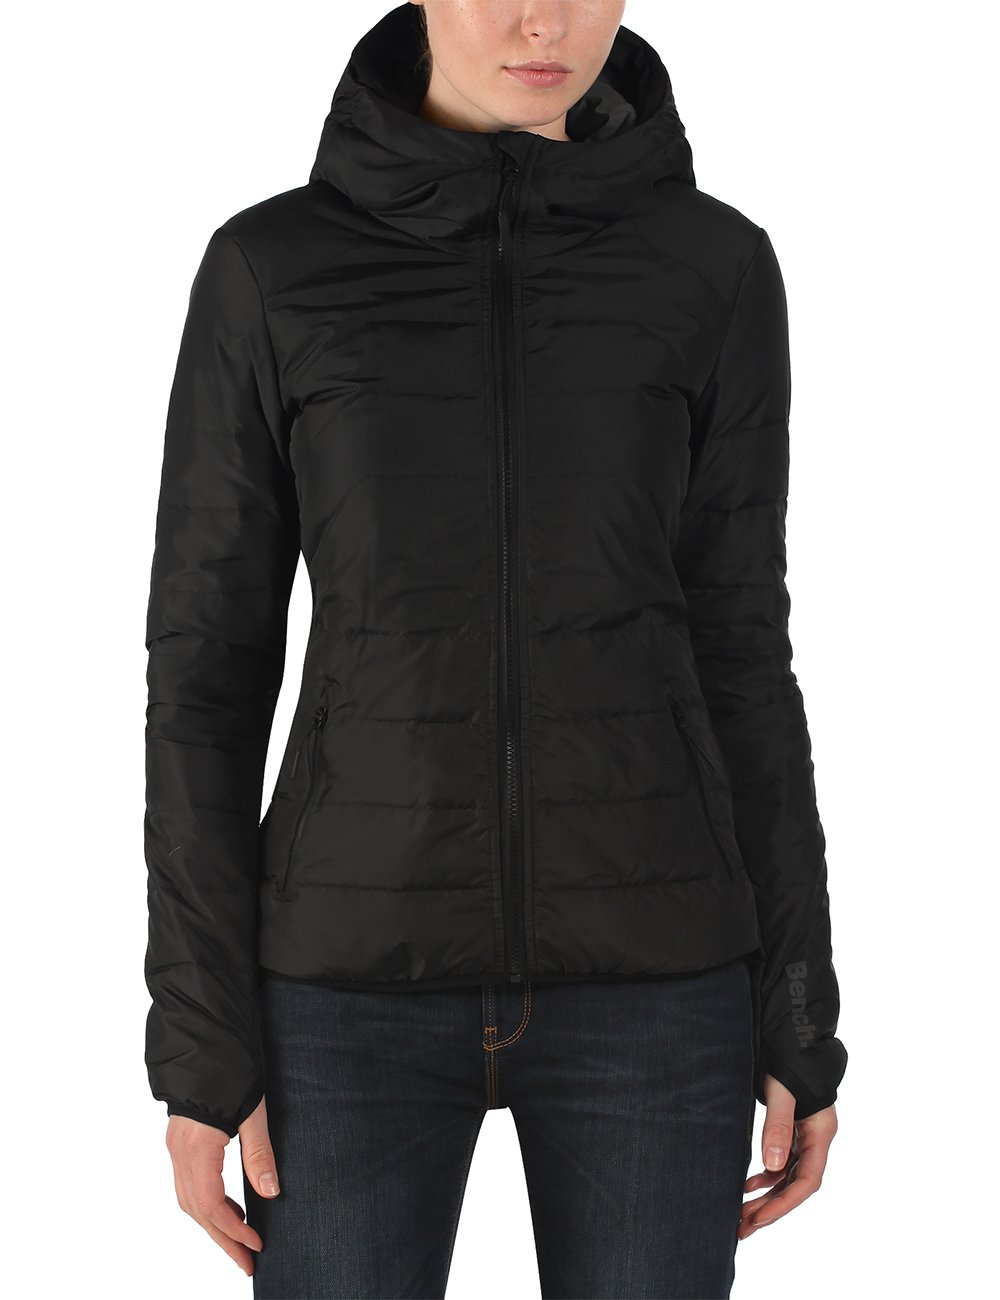 Bench Damen Steppjacke CACOONS